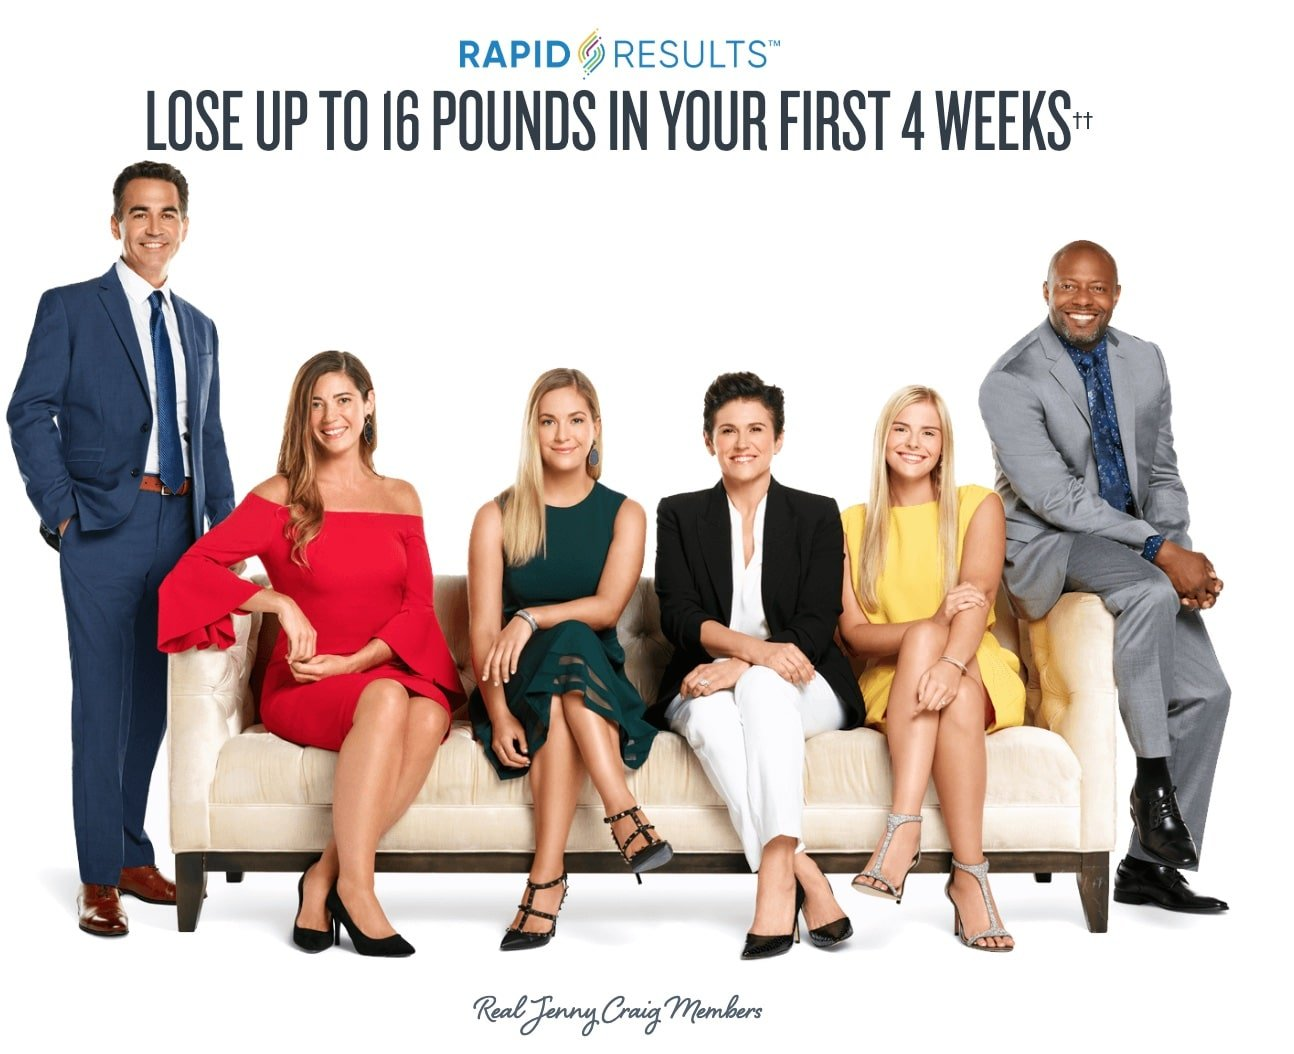 real jenny craig testimonials, pricing info, and results